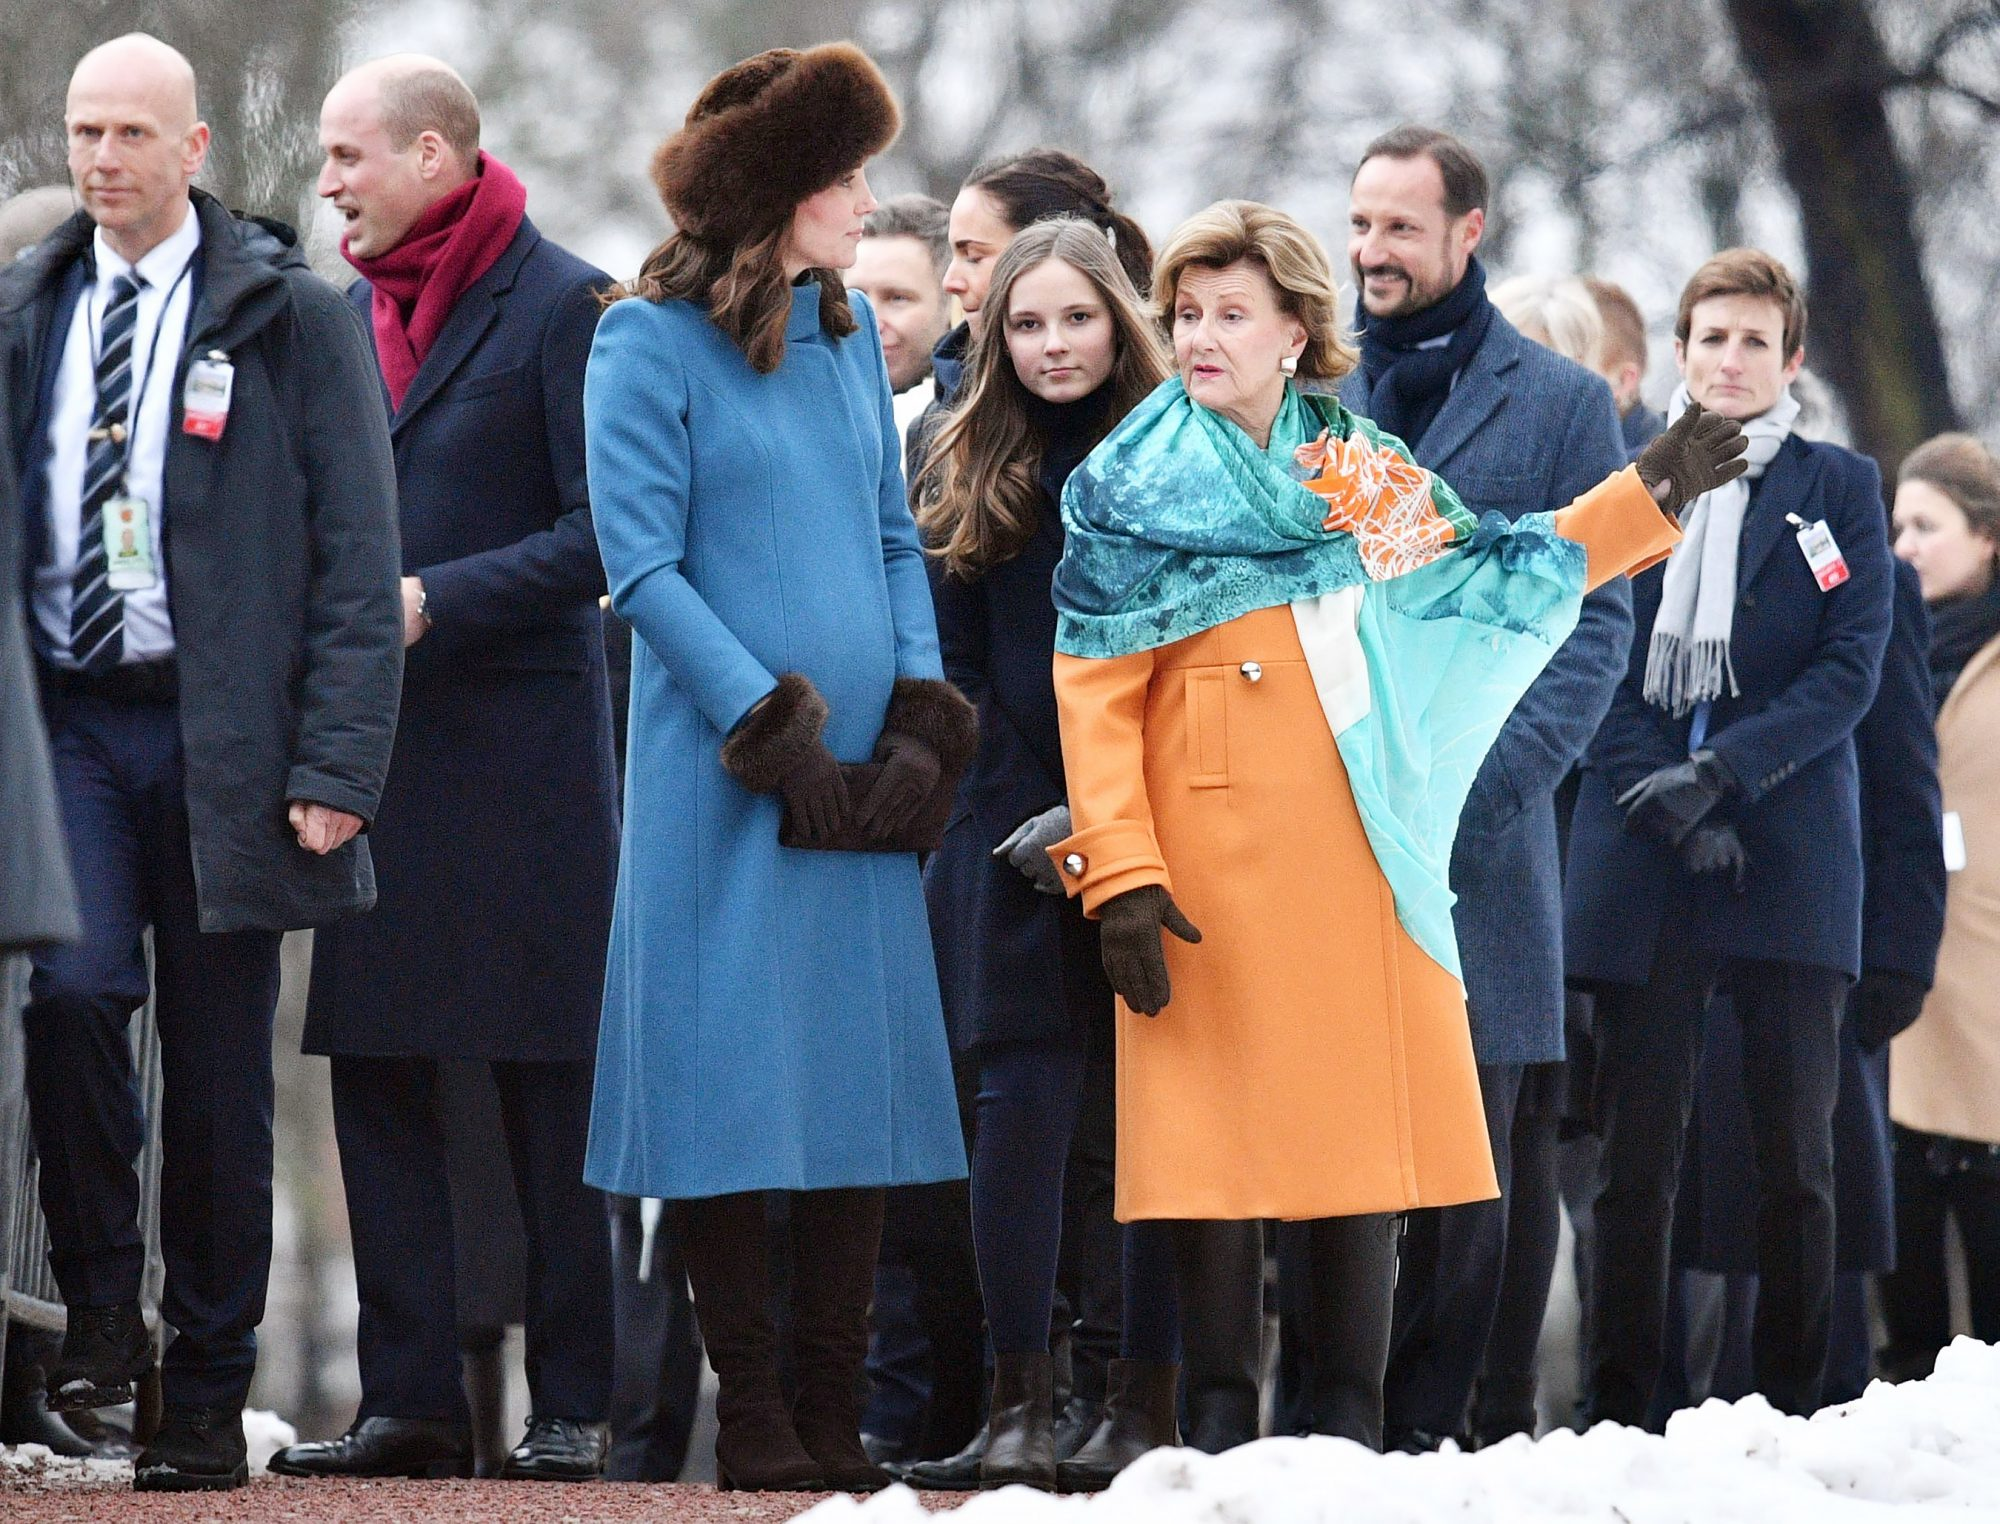 Prince William and Catherine Duchess of Cambridge visit to Norway - 01 Feb 2018